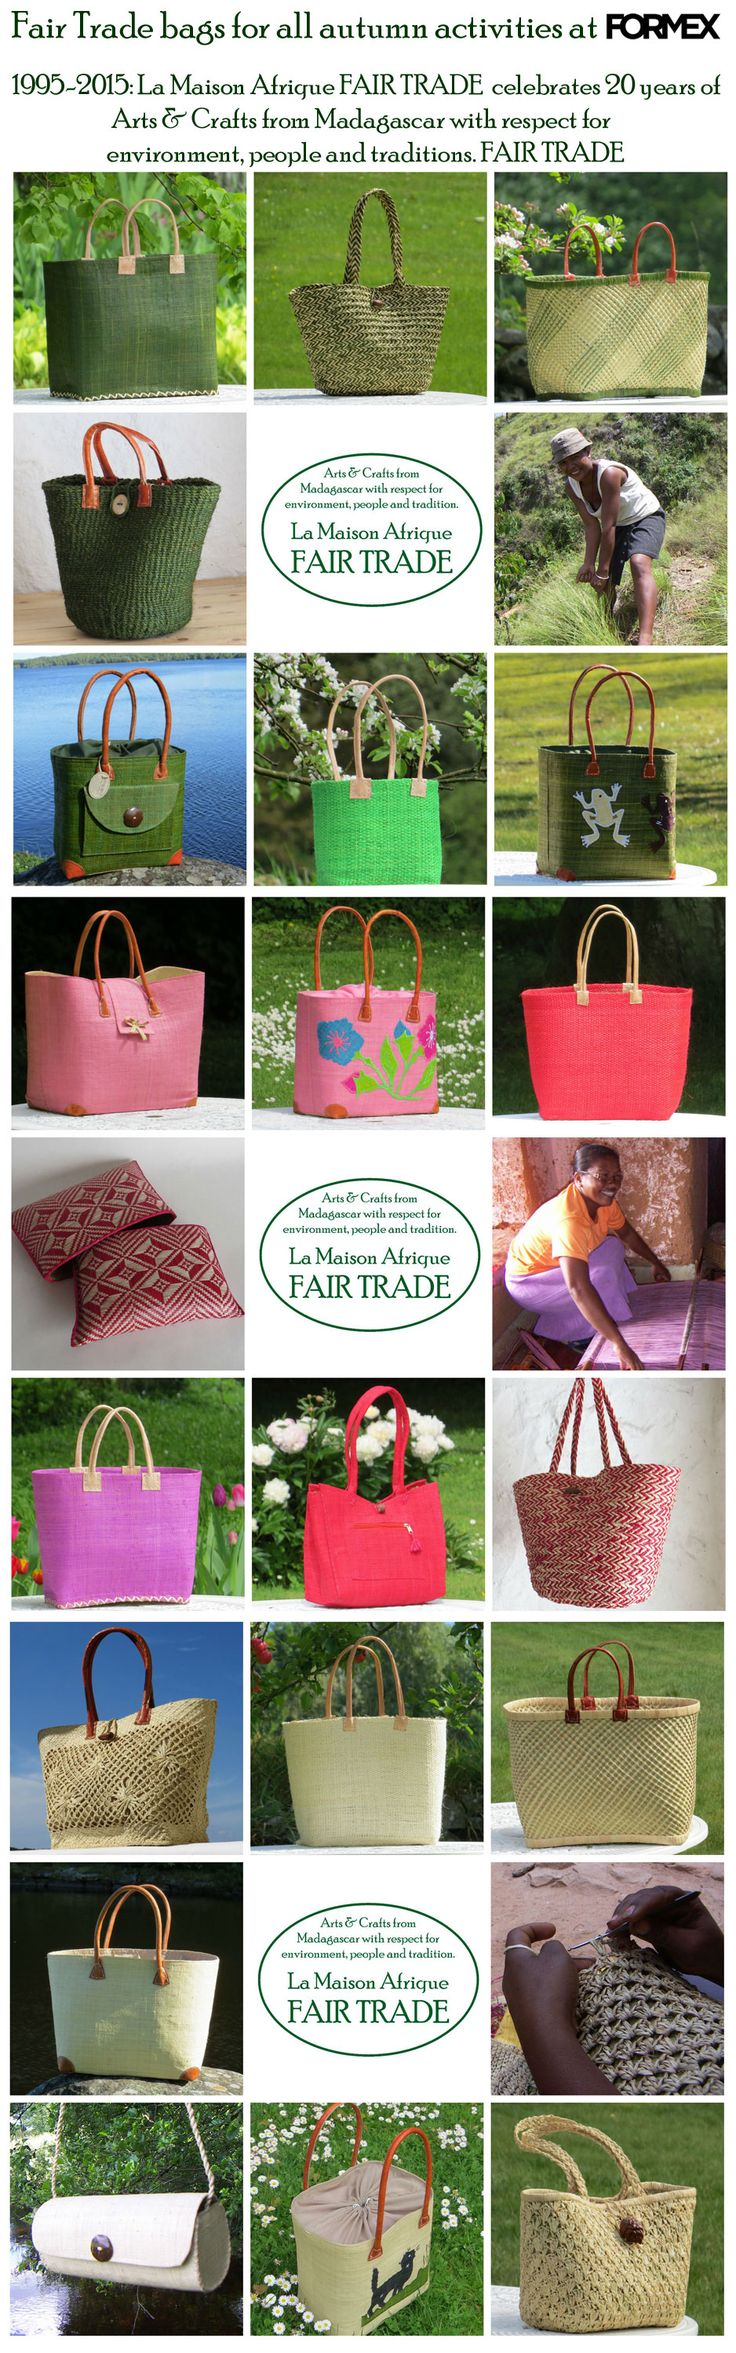 Fair Trade bags for all autumn activities. La Maison Afrique FAIR TRADE celebrates 20 years - welcome to the stand at Formex, Stockholm aug 2015.